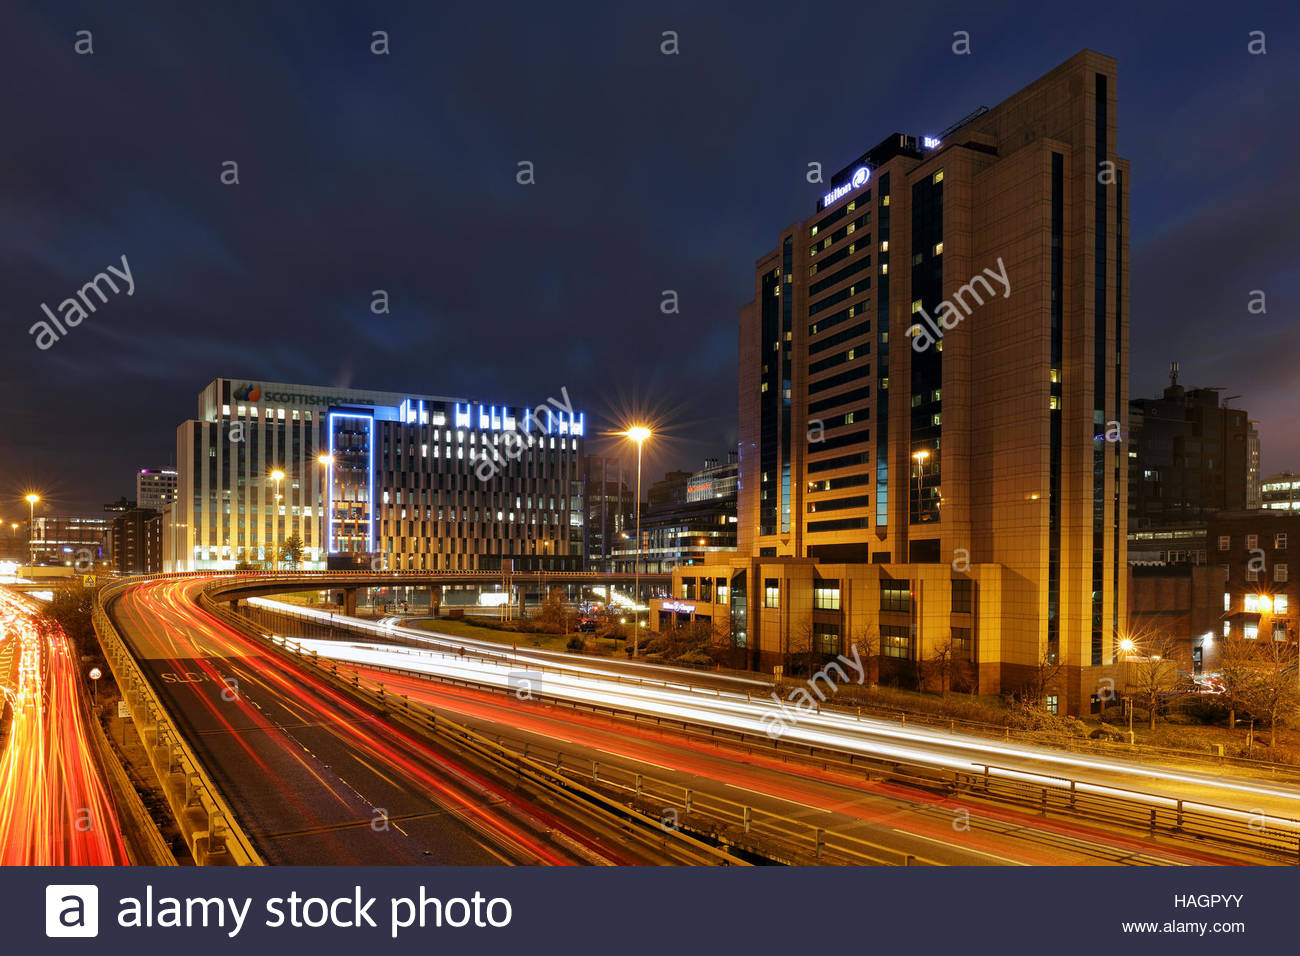 Car night trails heading to and from Glasgow city centre with the Hilton hotel and Scottish power buildings in view - Stock Image